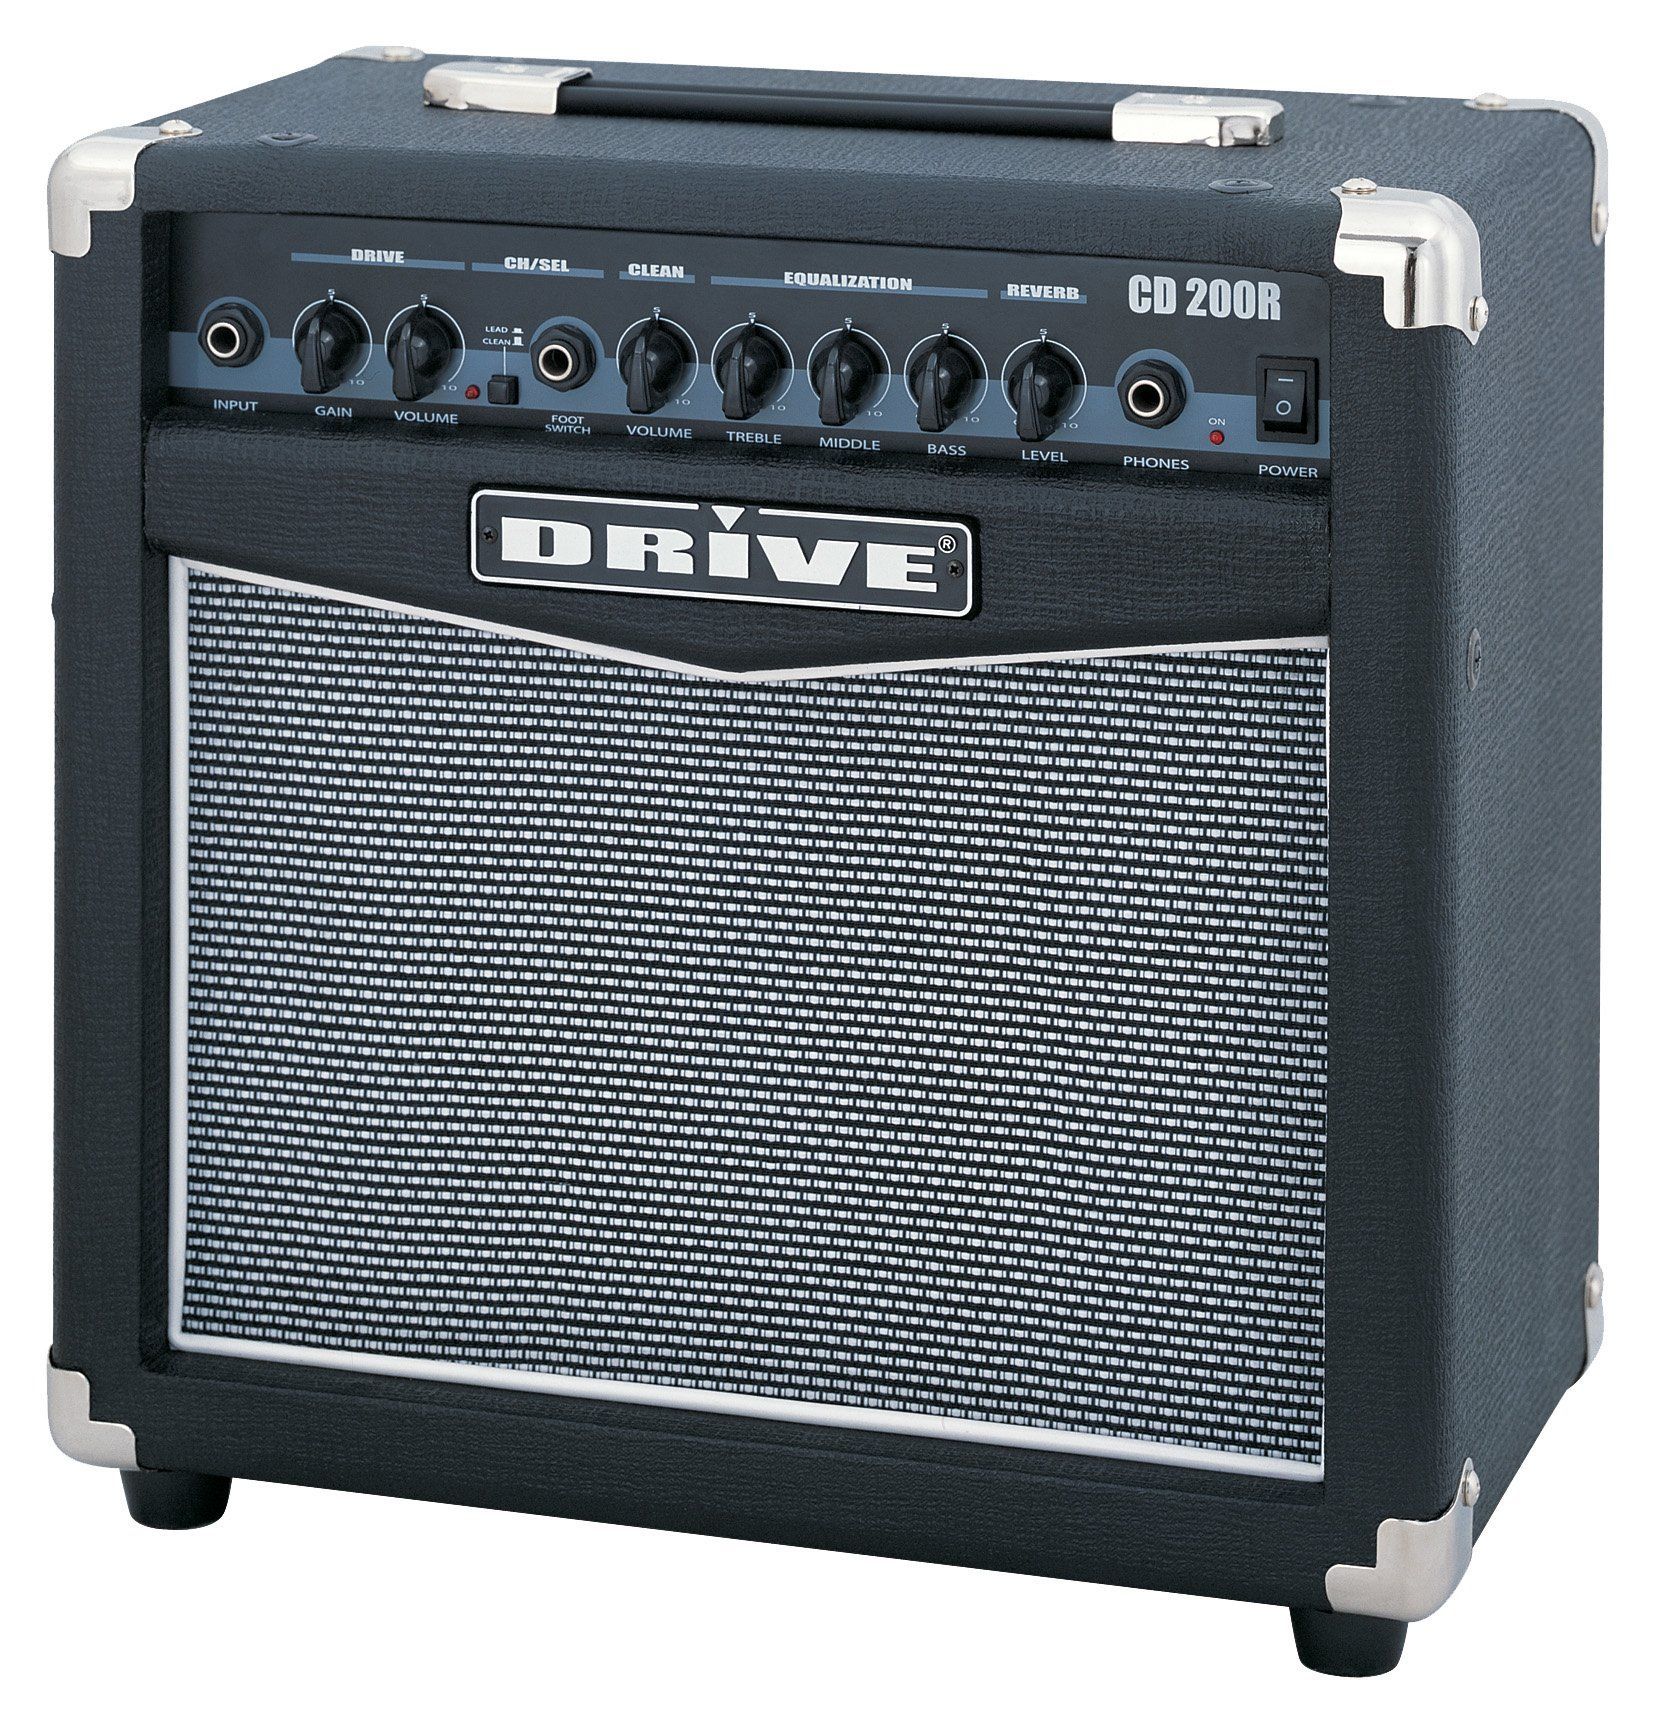 drive cd 200b bass guitar amplifier musical products i use